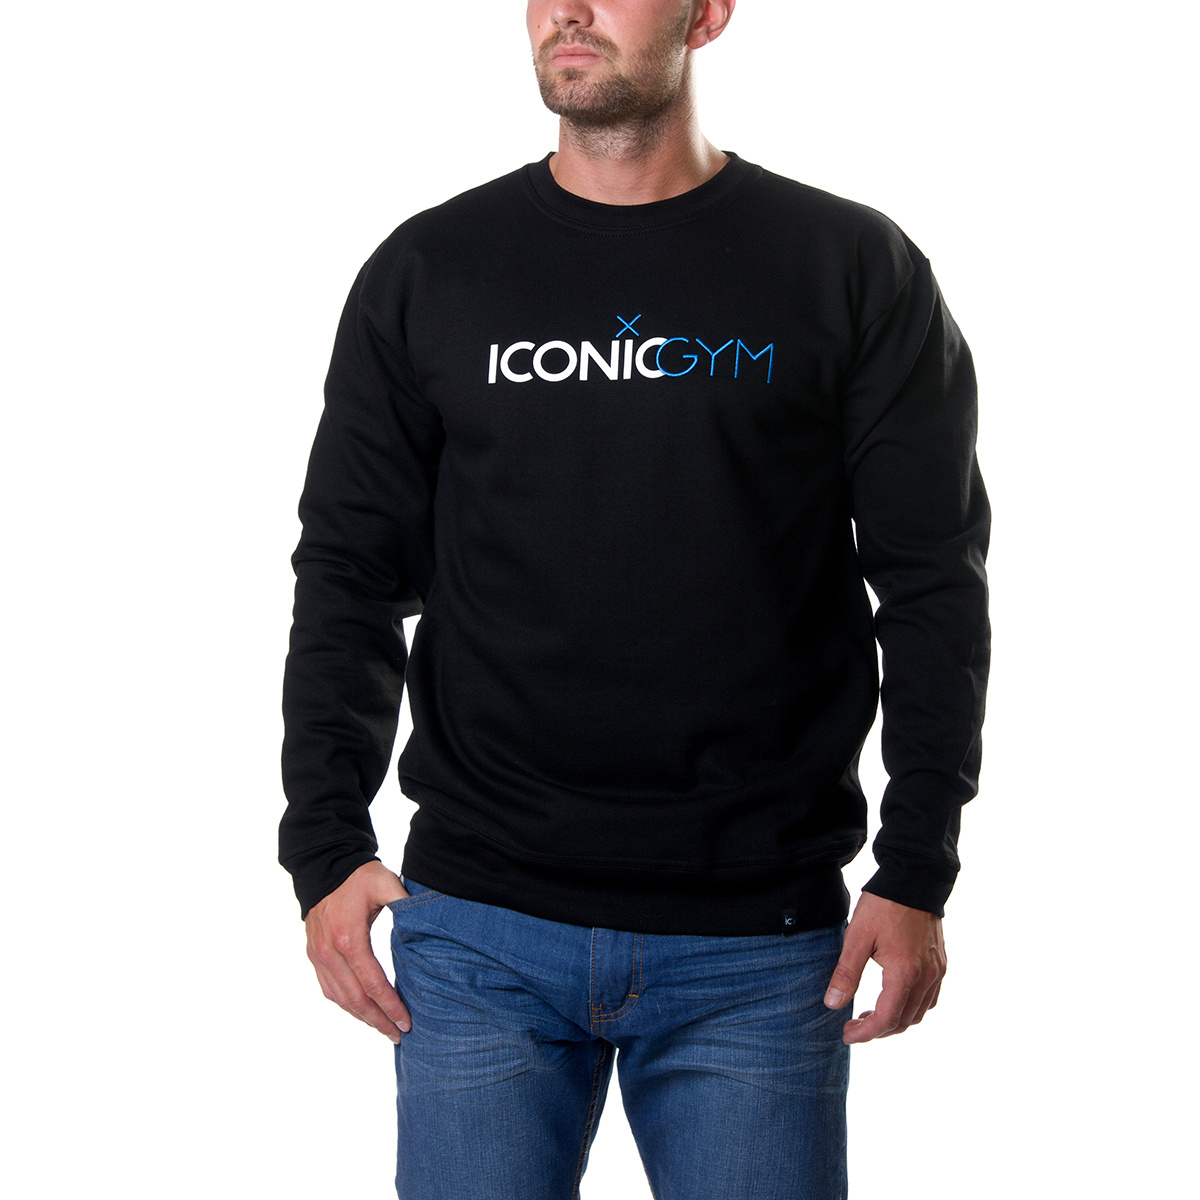 ICONICGYM - Mikina ICONICGYM Team  b5b4c0b9cd